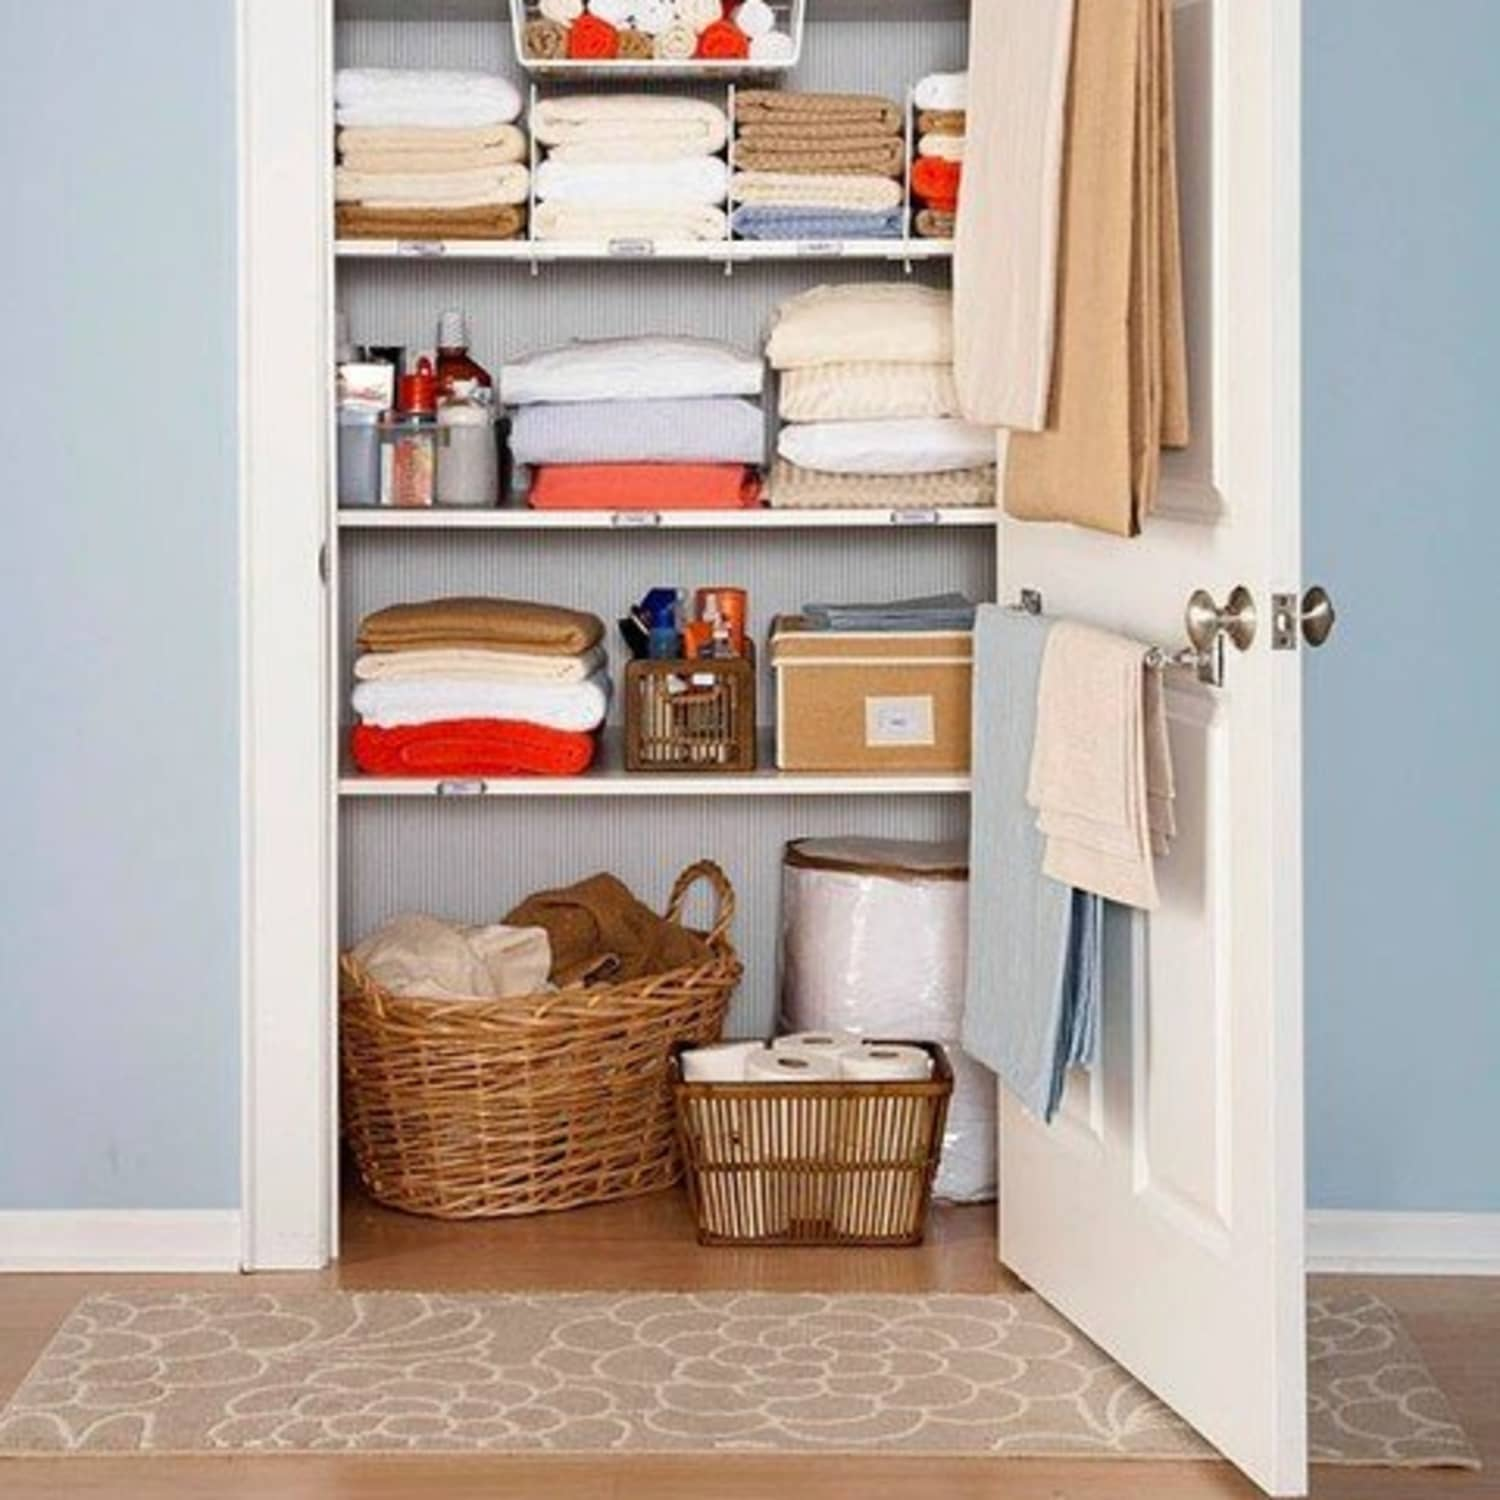 6 Ways To Get More Space Out Of A Tiny Linen Closet Apartment Therapy